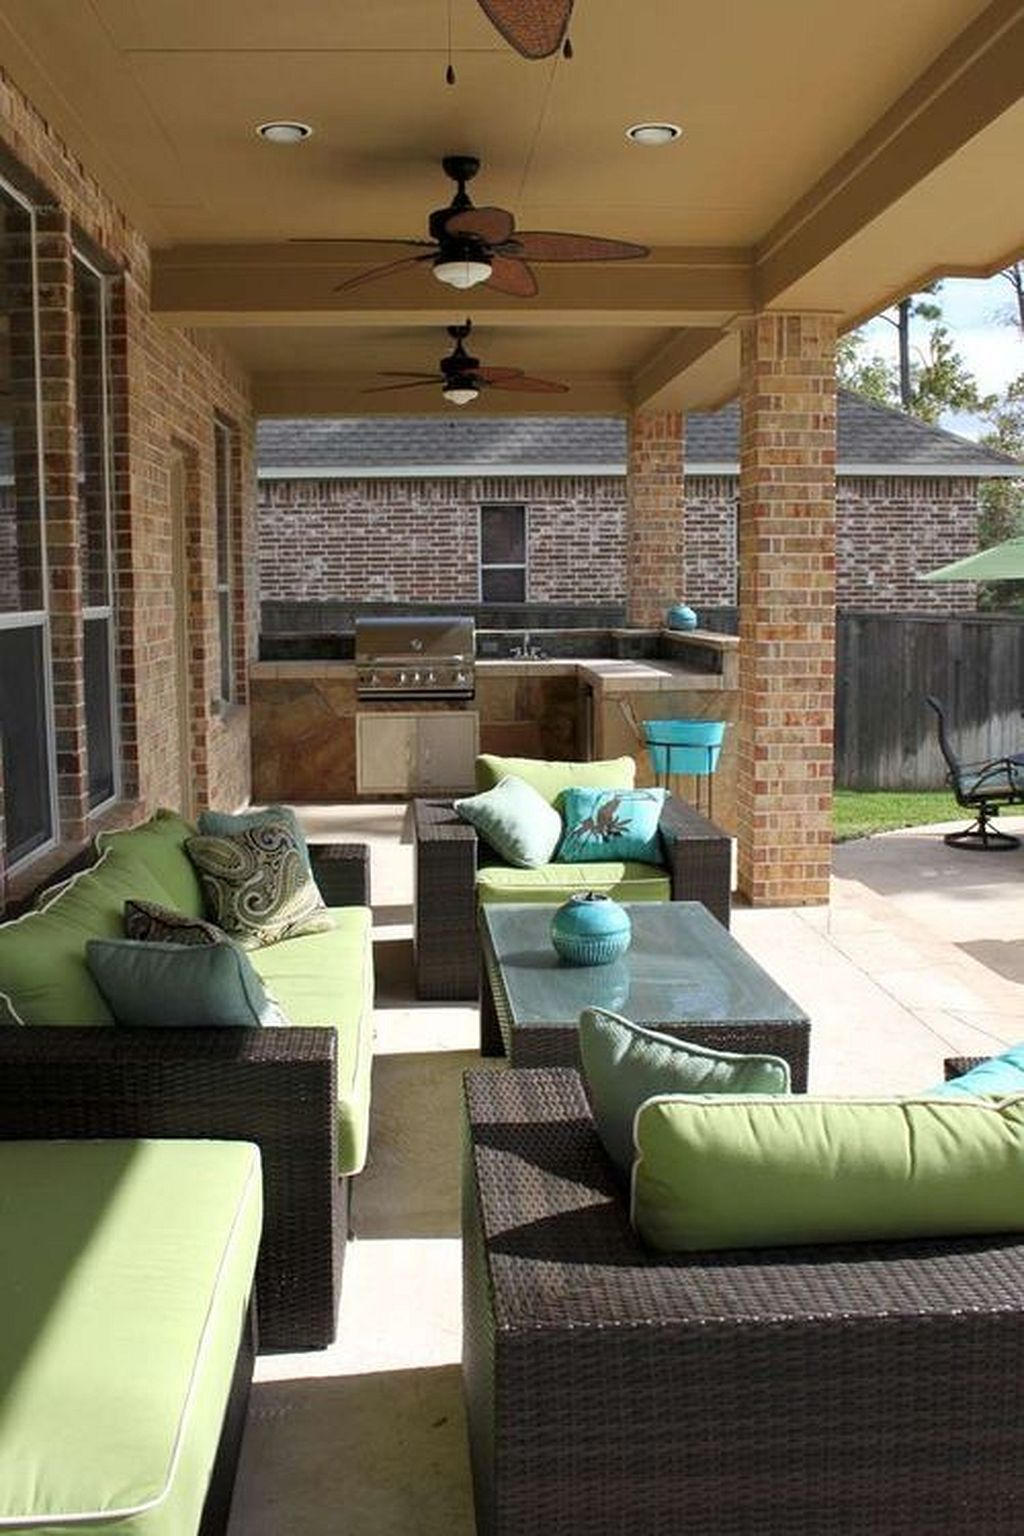 cozy and cool outdoor living spaces inspiration 49 outdoor living space outdoor rooms diy on outdoor kitchen and living space id=22433